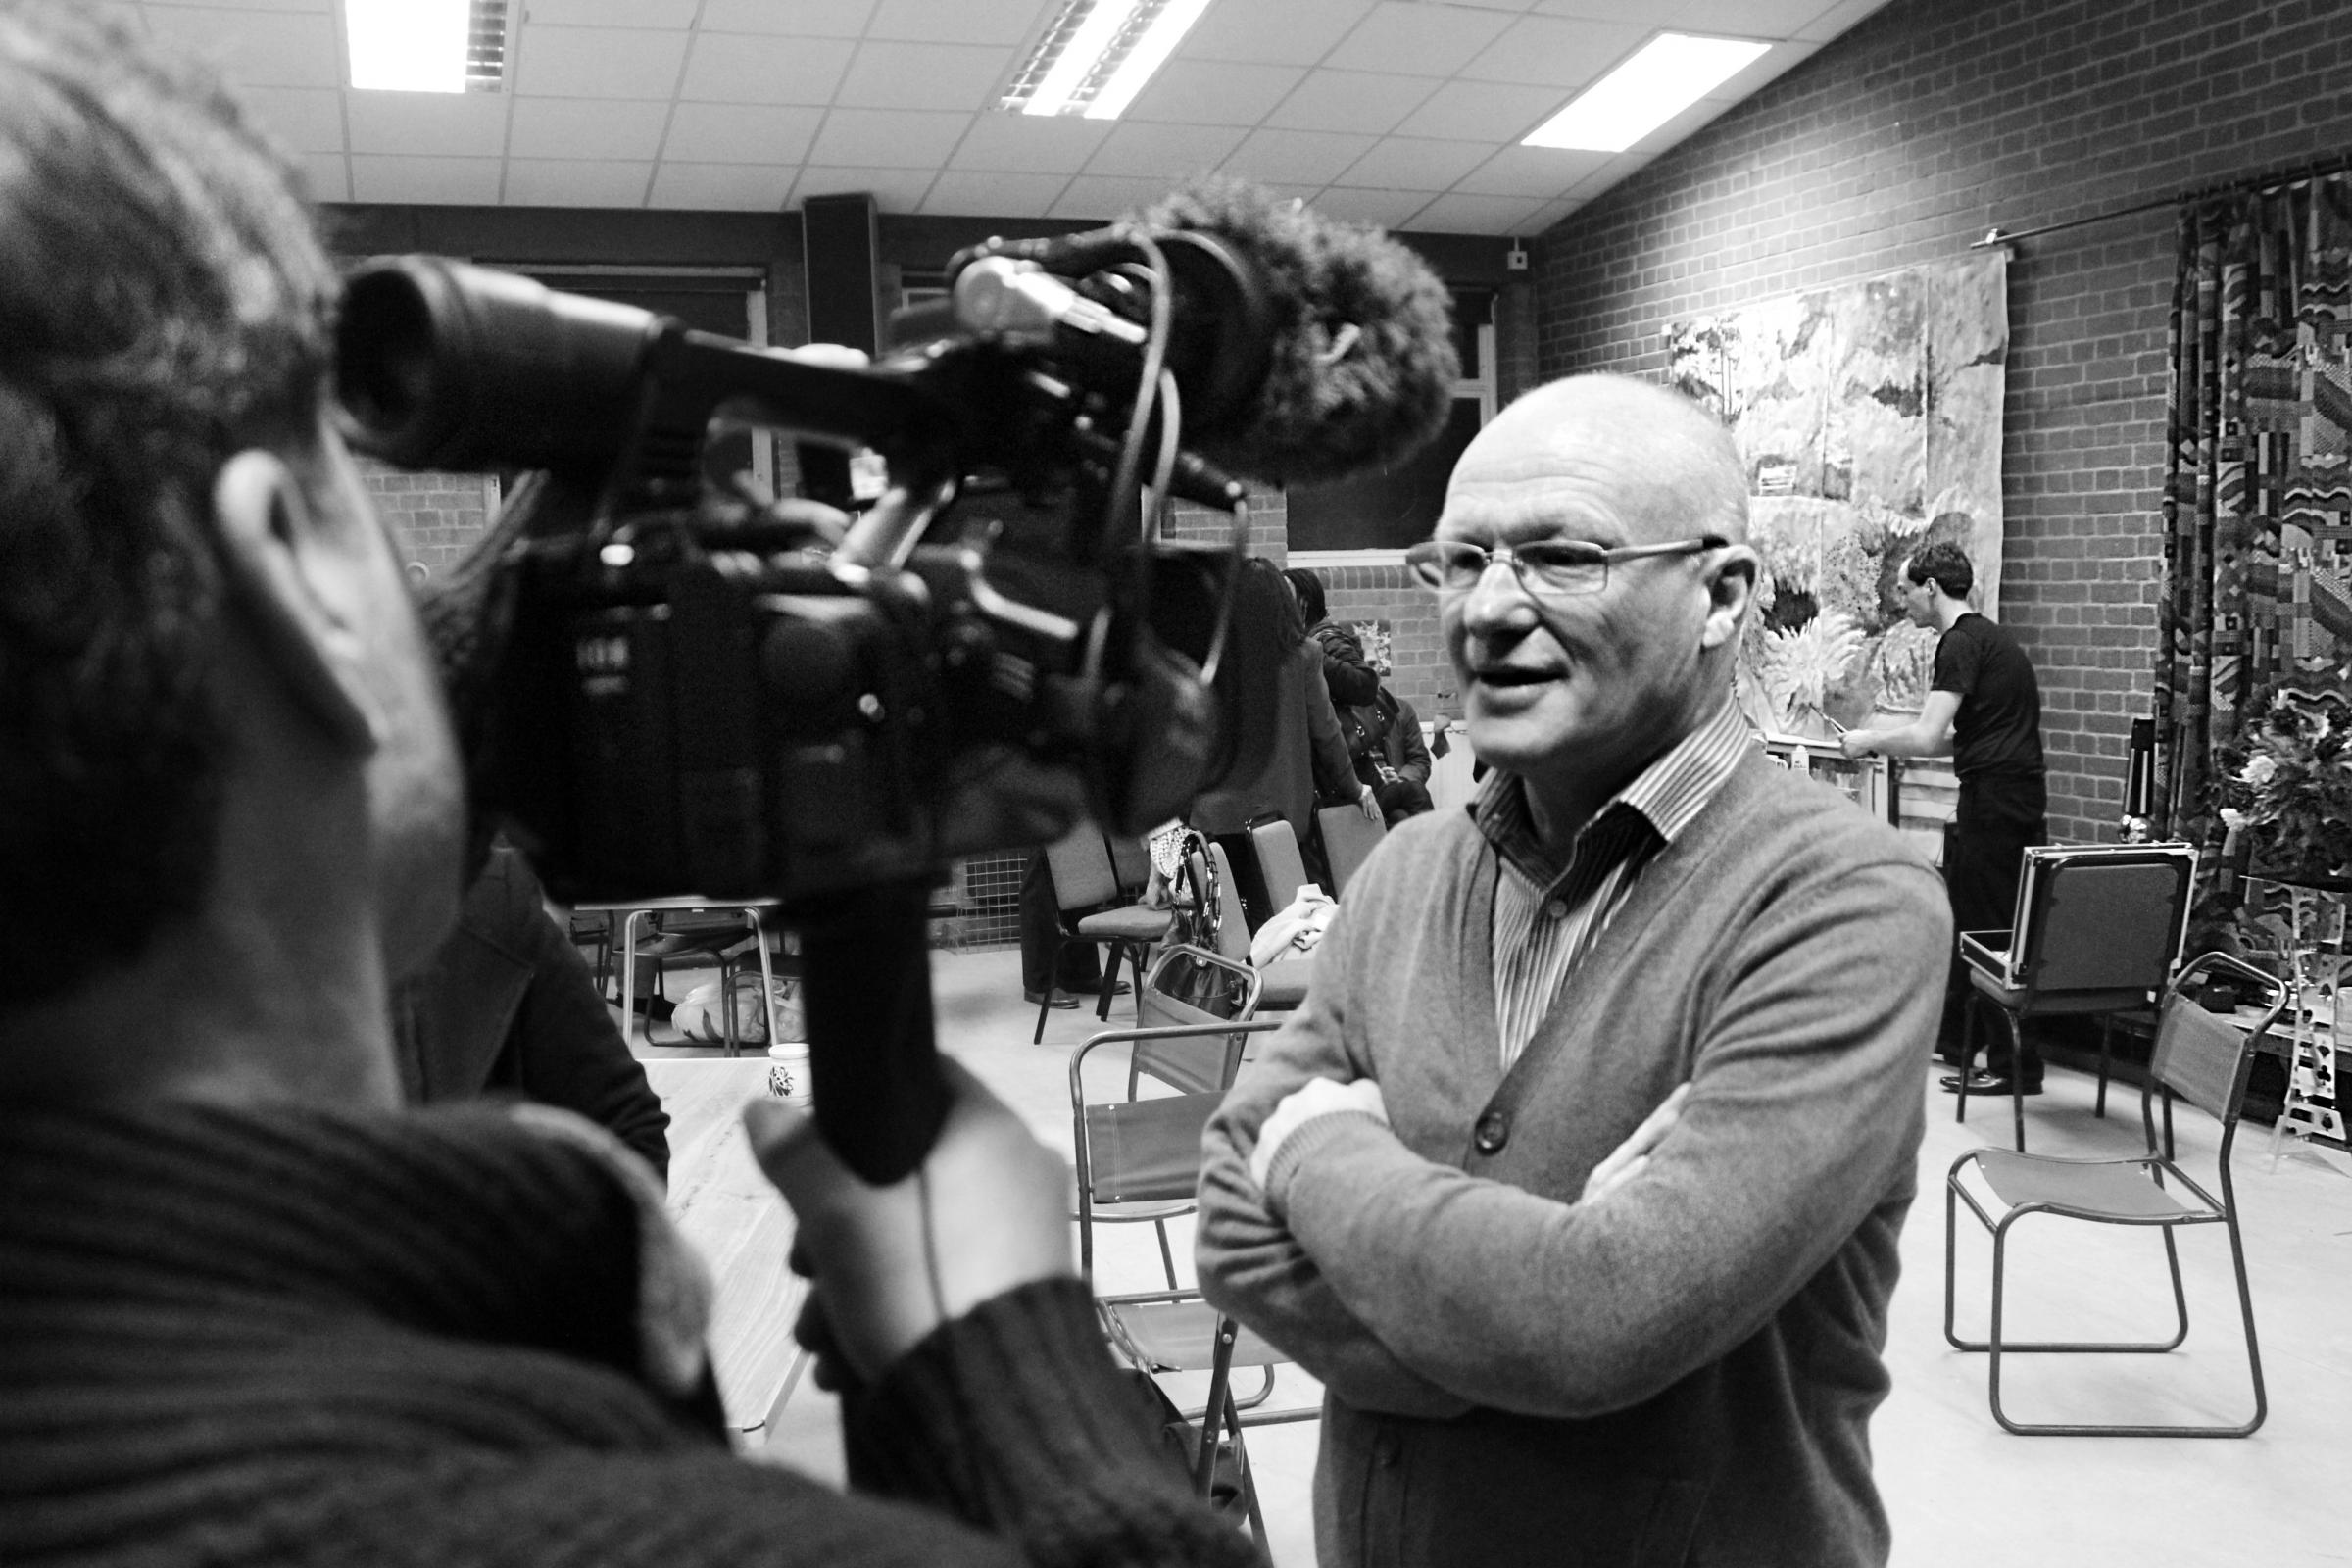 Martin Stone speaks to a camera man about the new project with the Romanian Embassy. Picture taken by Joe Beedle